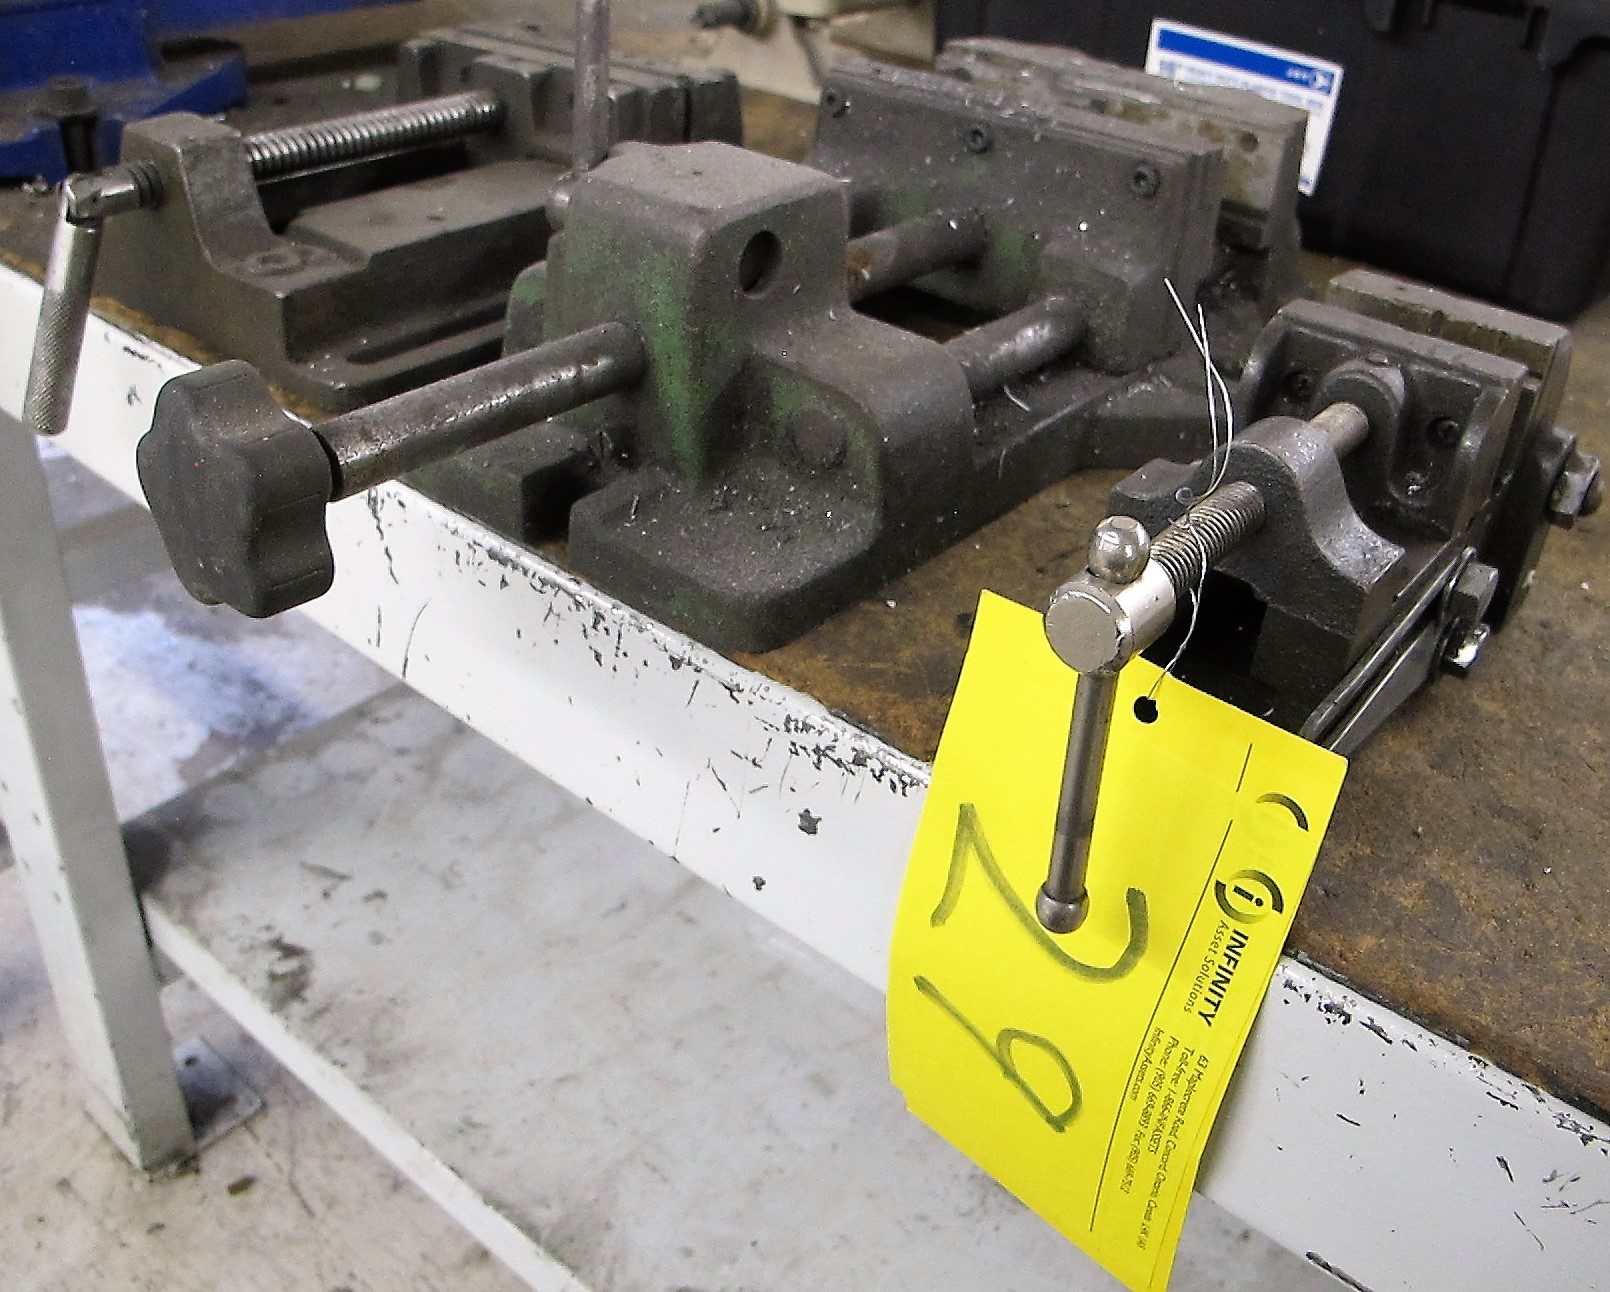 """LOT OF 3 MACHINE VISES (2 - 6"""" AND 1 - 2 1/2"""")"""